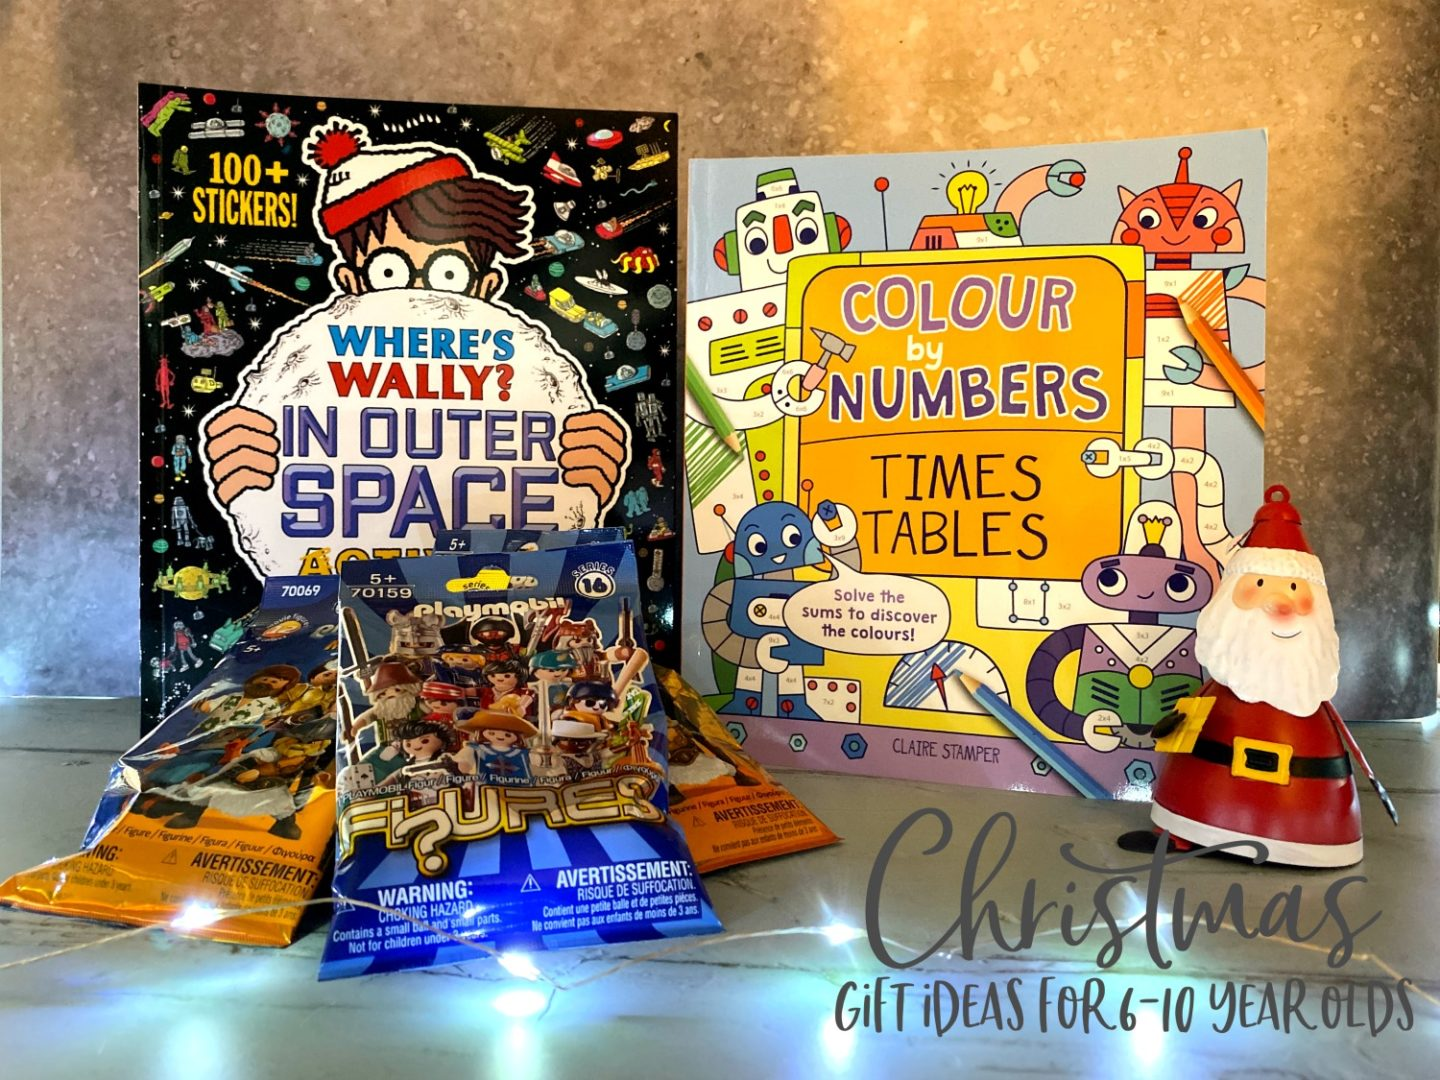 Christmas Gift Guide for 6-10 year olds